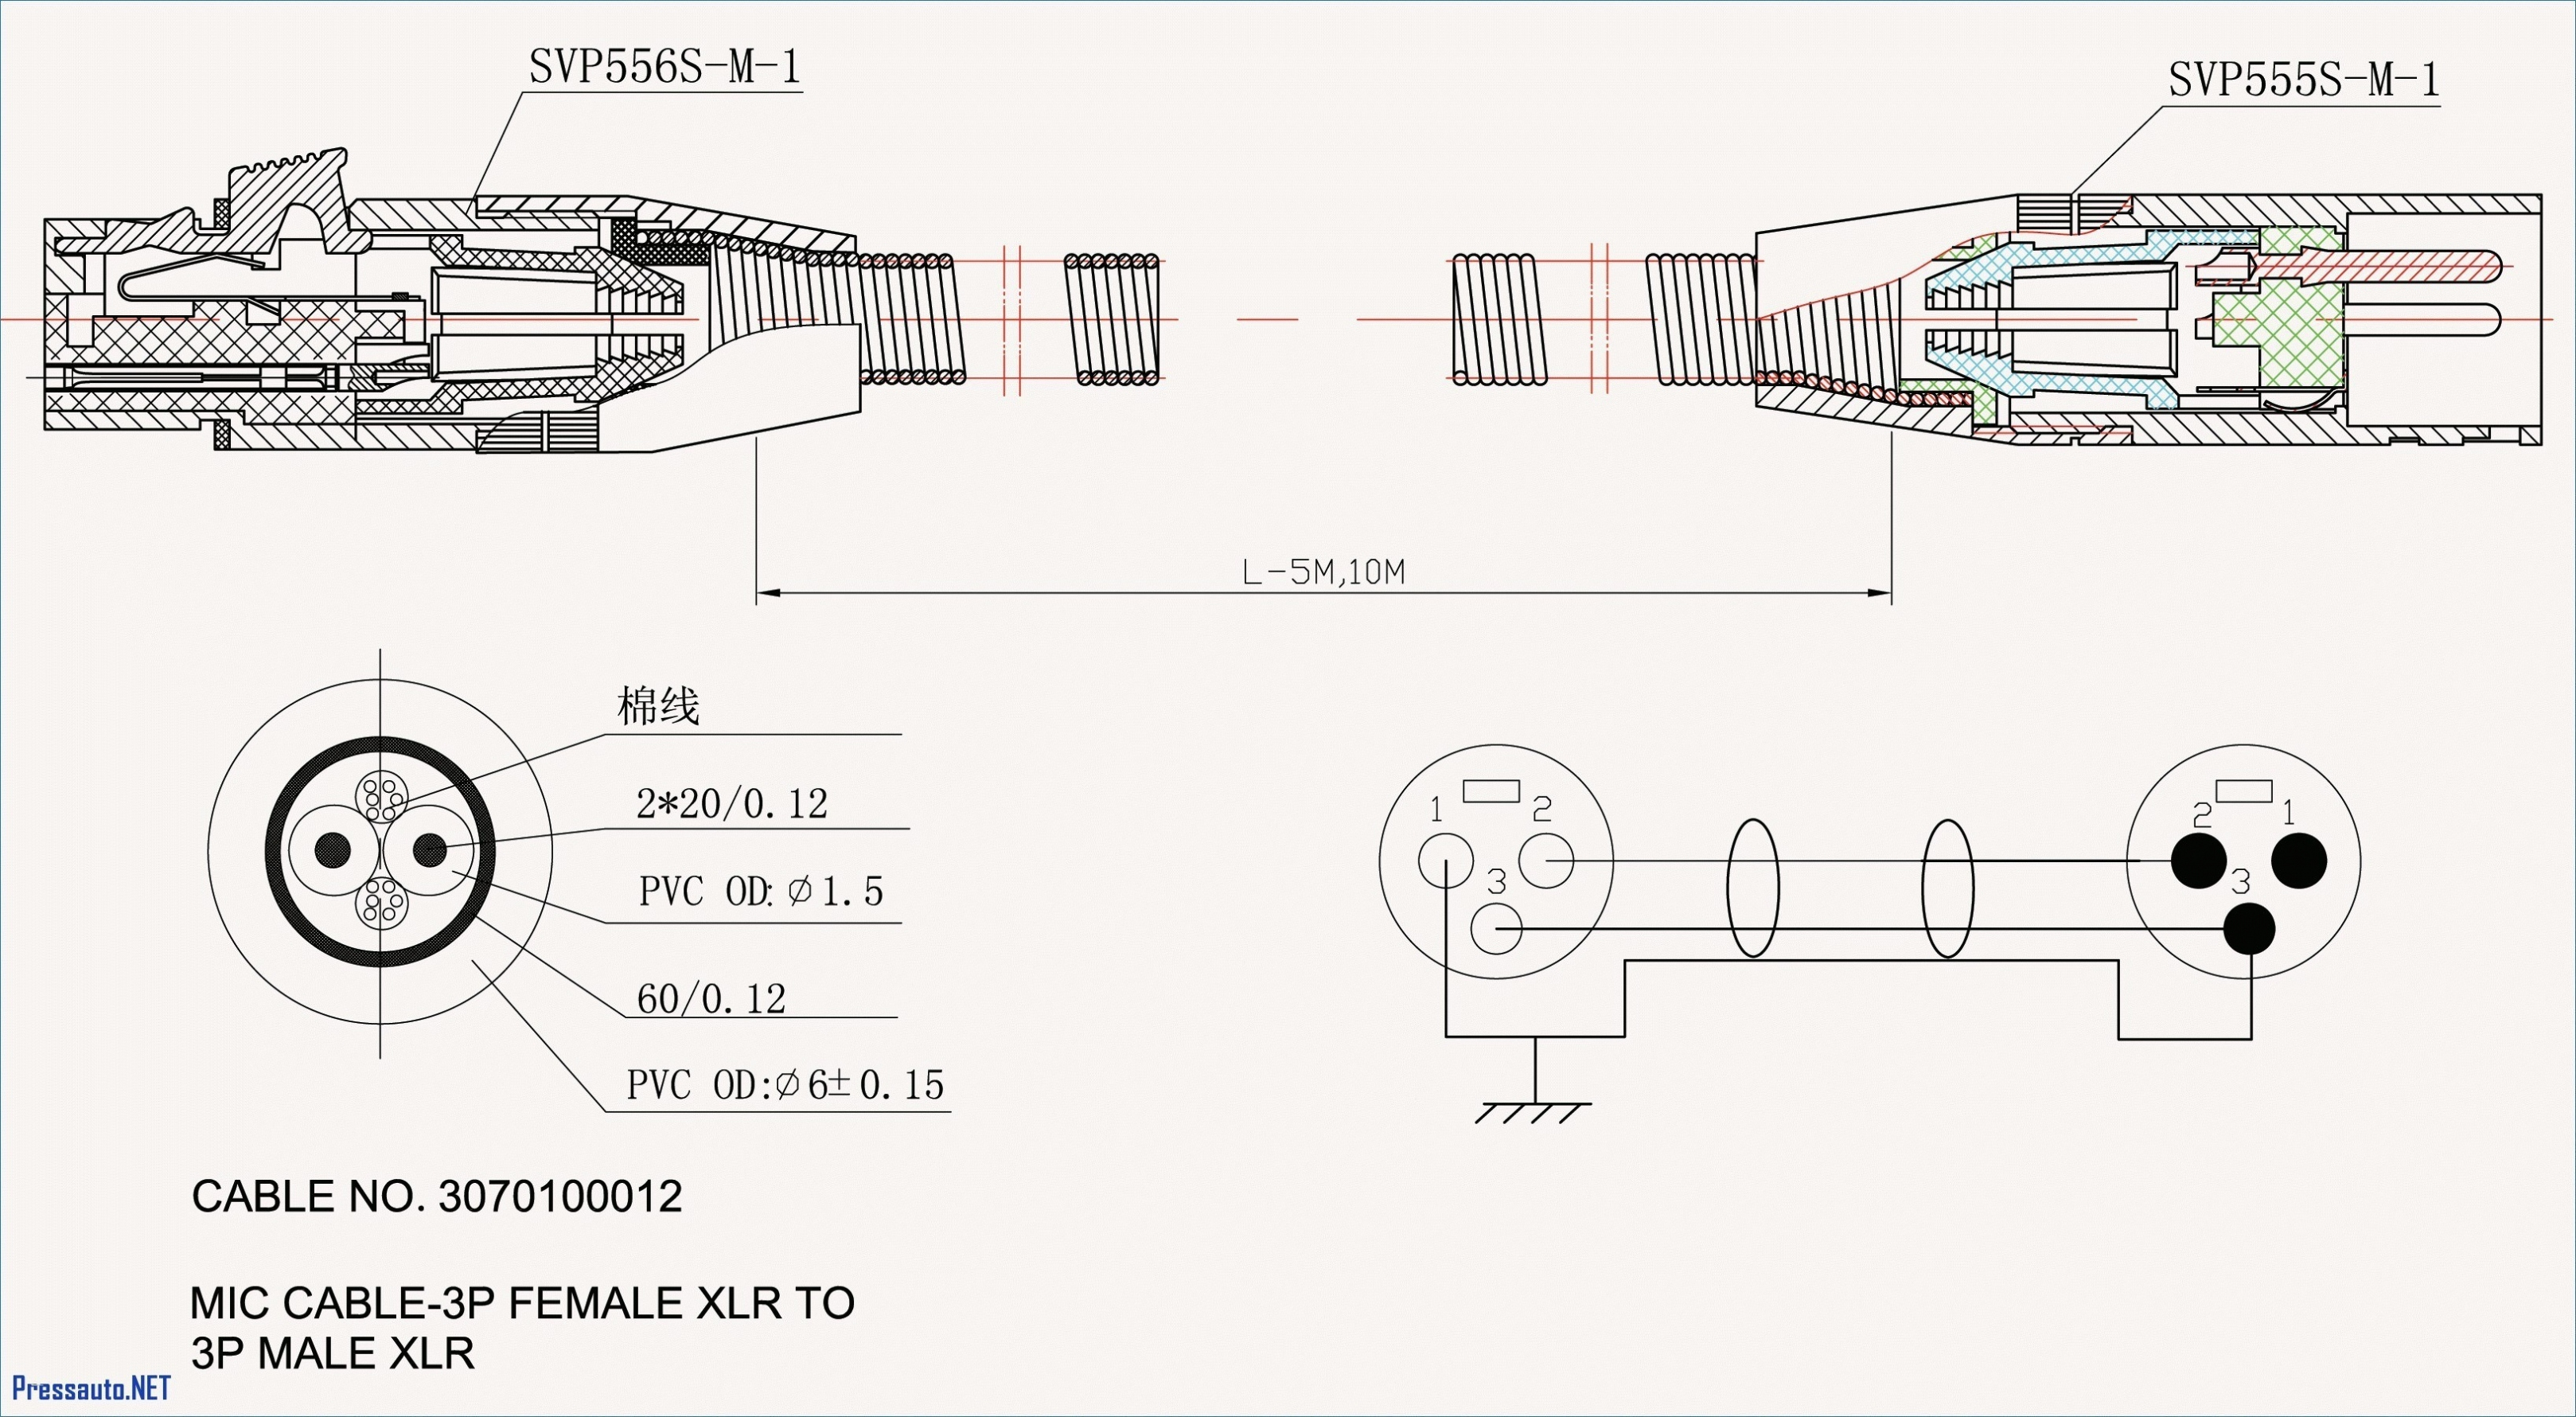 Wiring Diagram For Usb Plug Inspirationa Wiring Diagram For Usb - Wiring Diagram Of Usb Cable